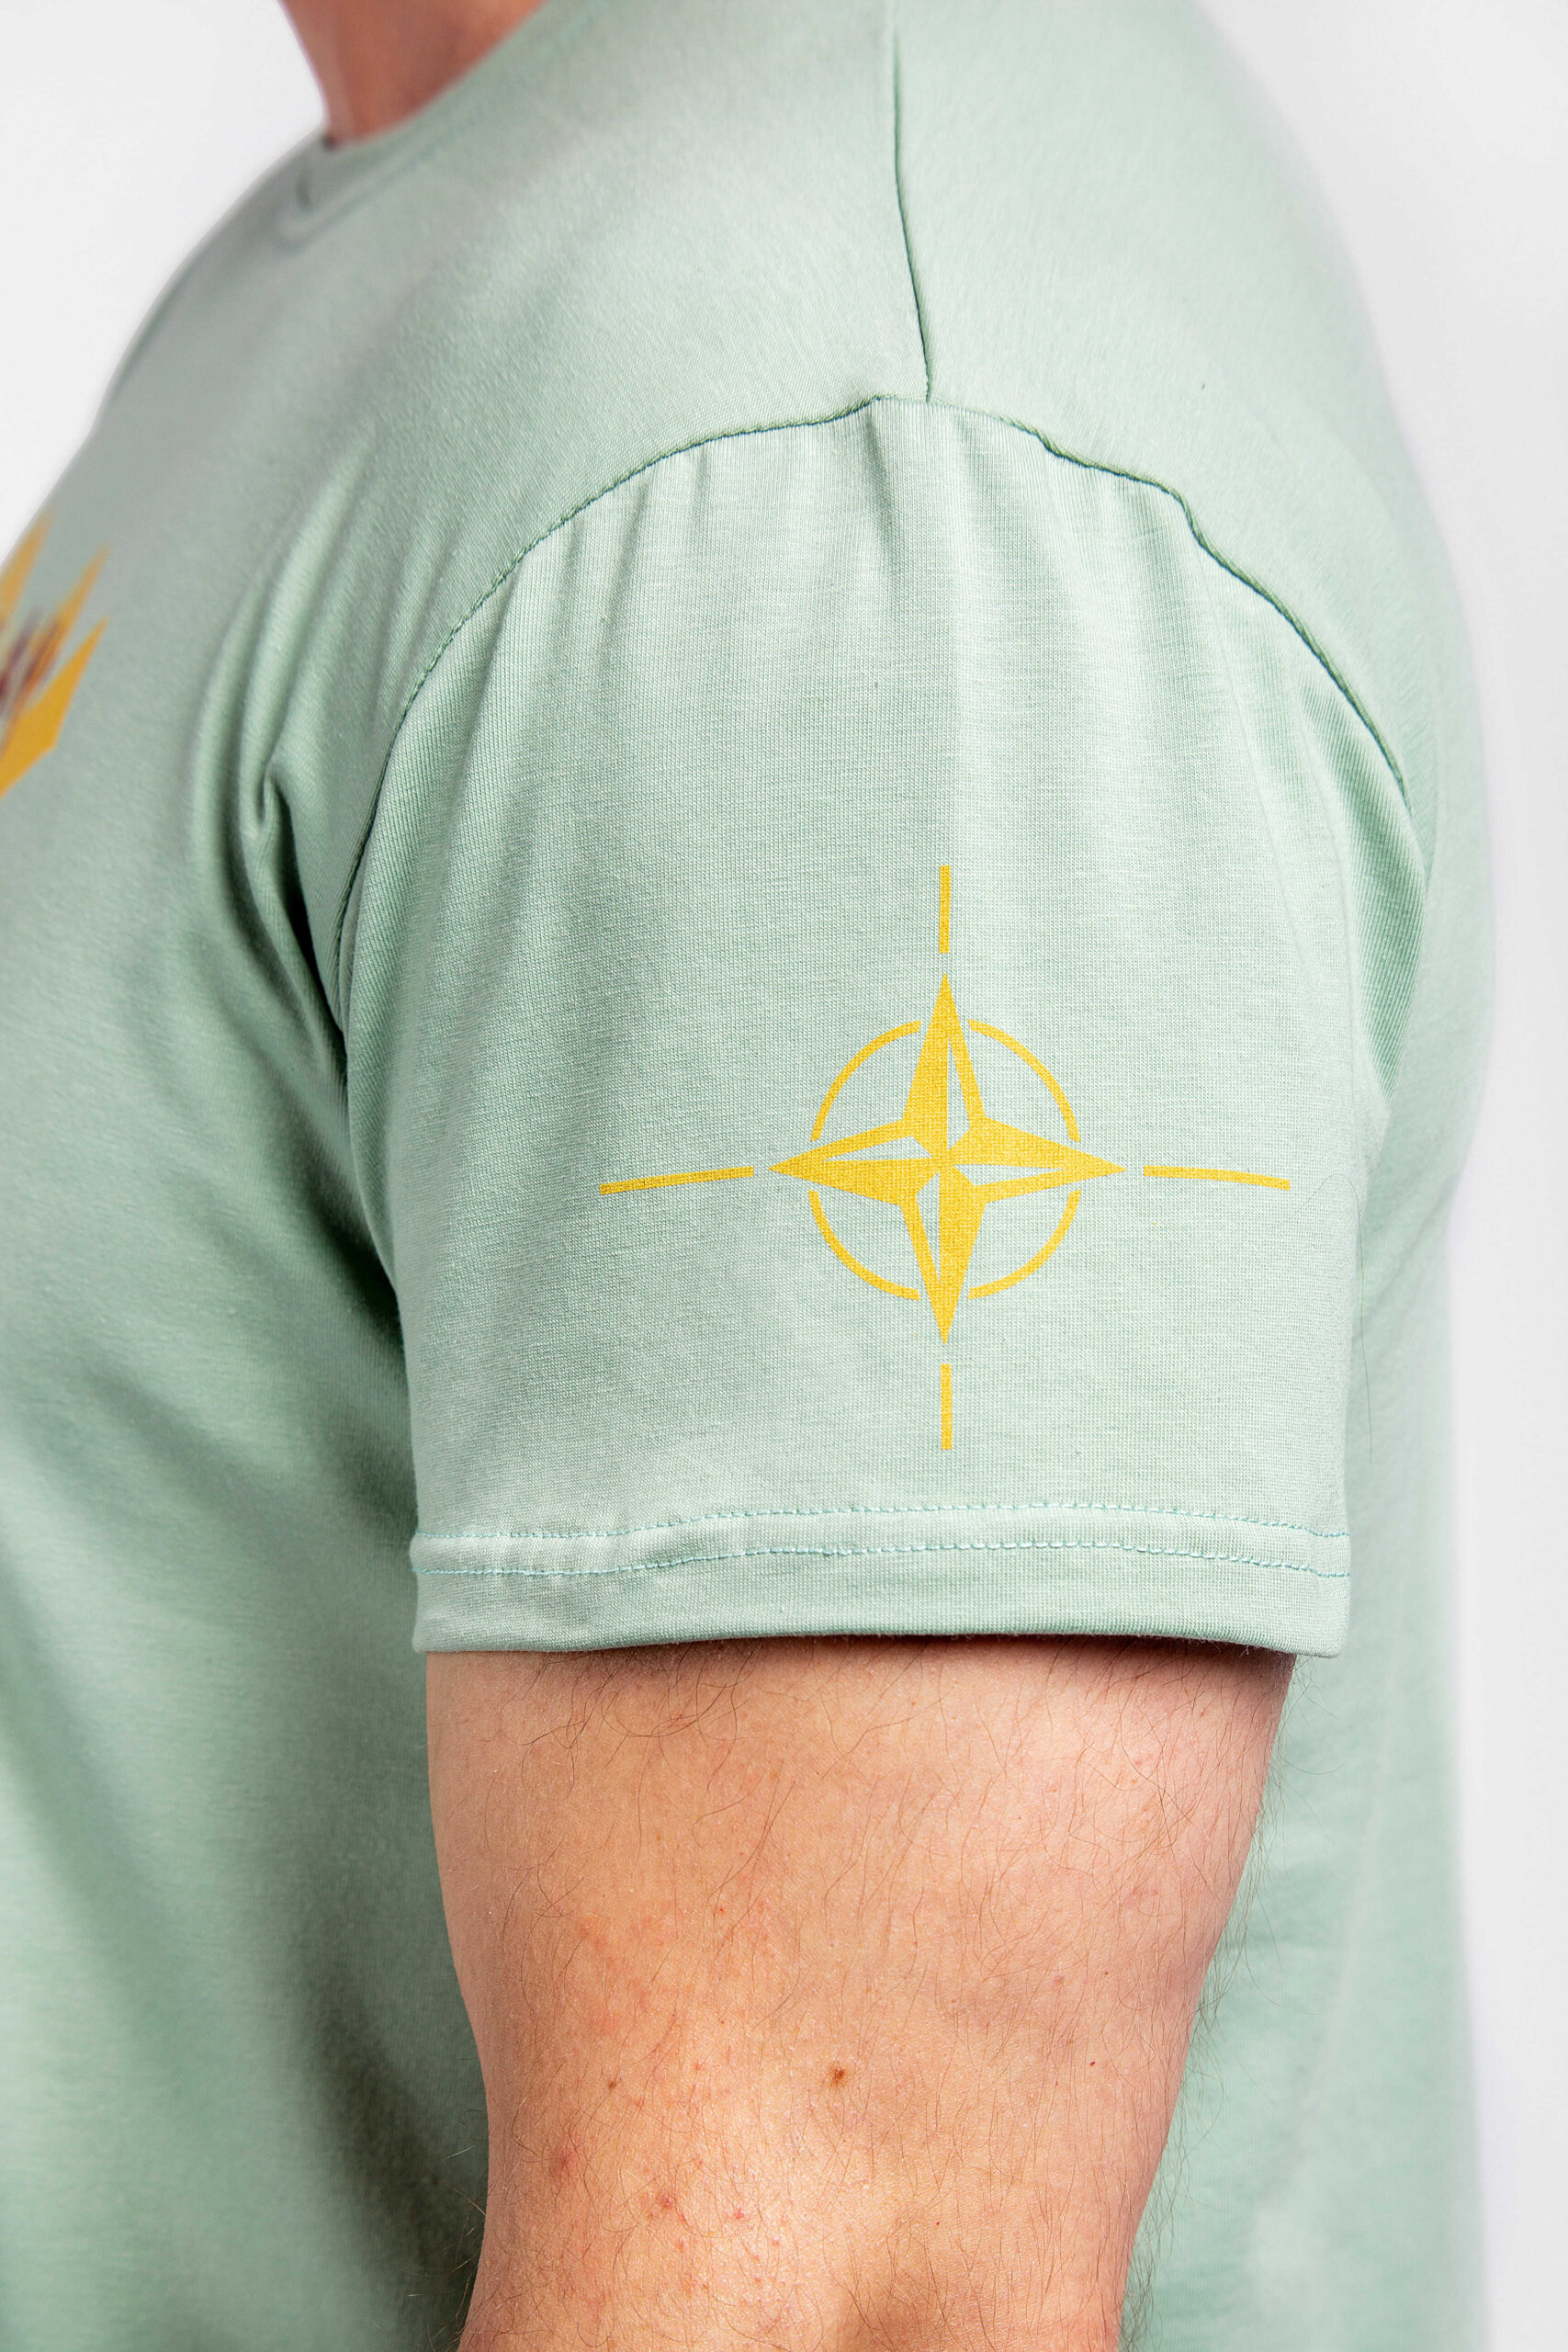 Men's T-Shirt Defenders Of The Sea. Color mint.  Size worn by the model: L.